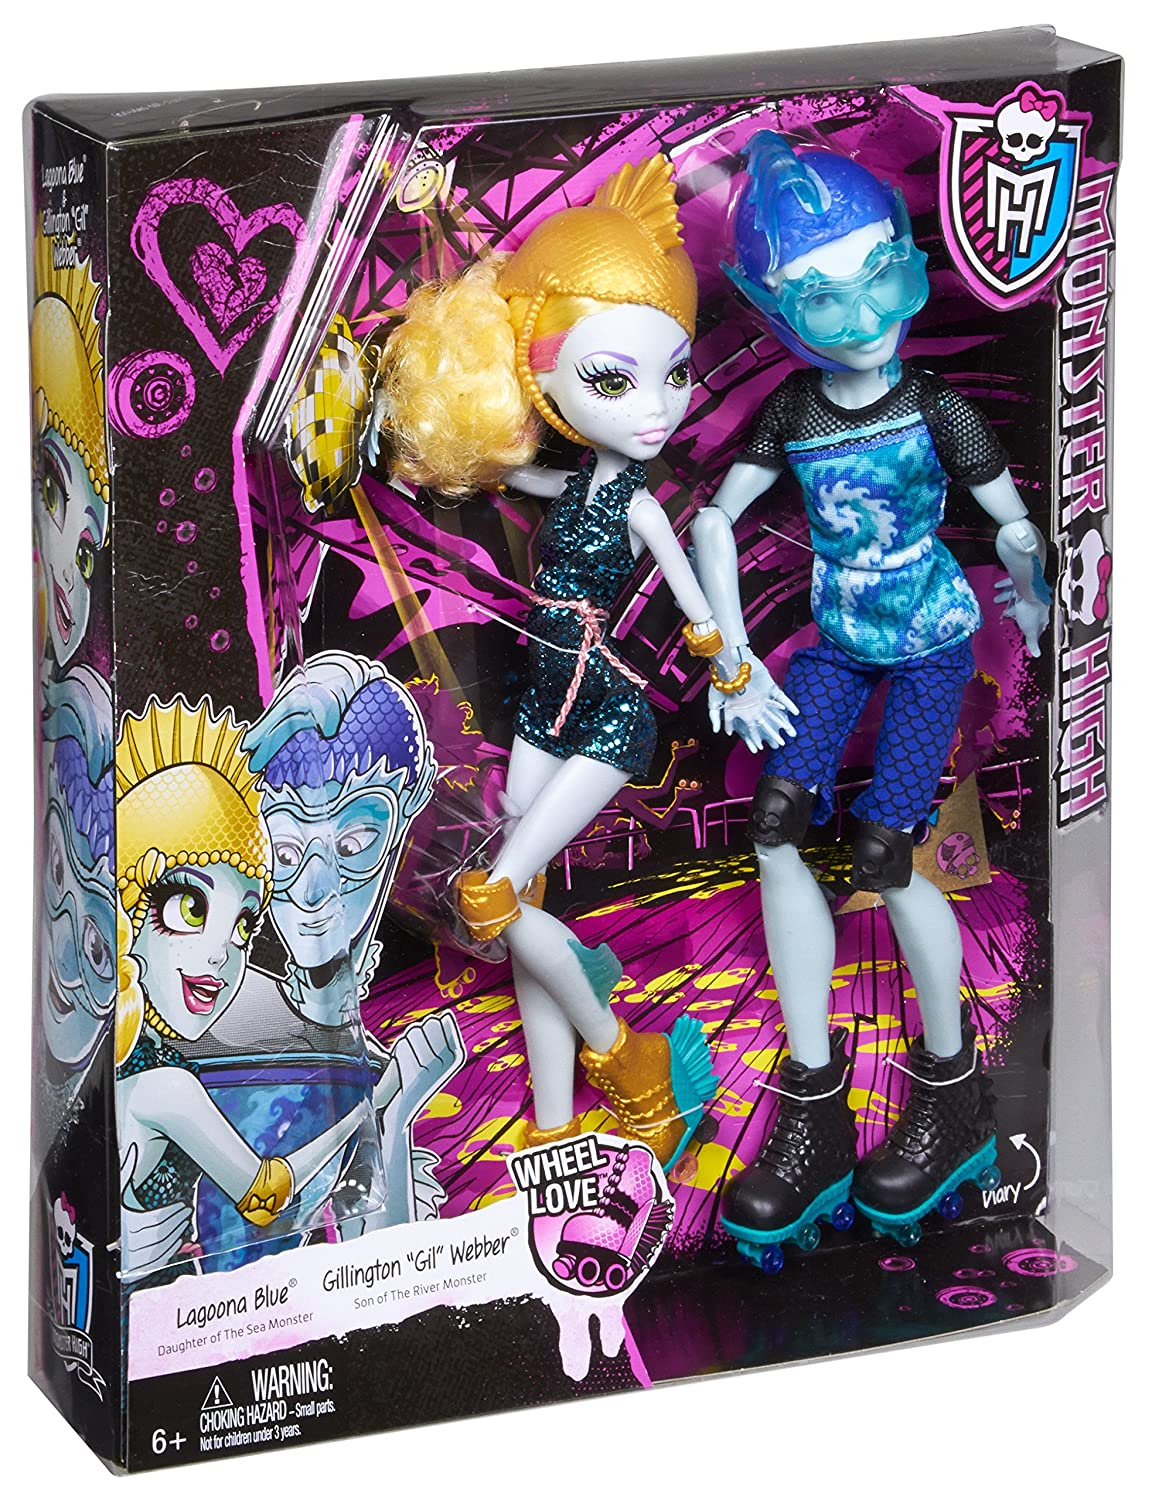 amazon com monster high lagoona blue and gil weber wheel love